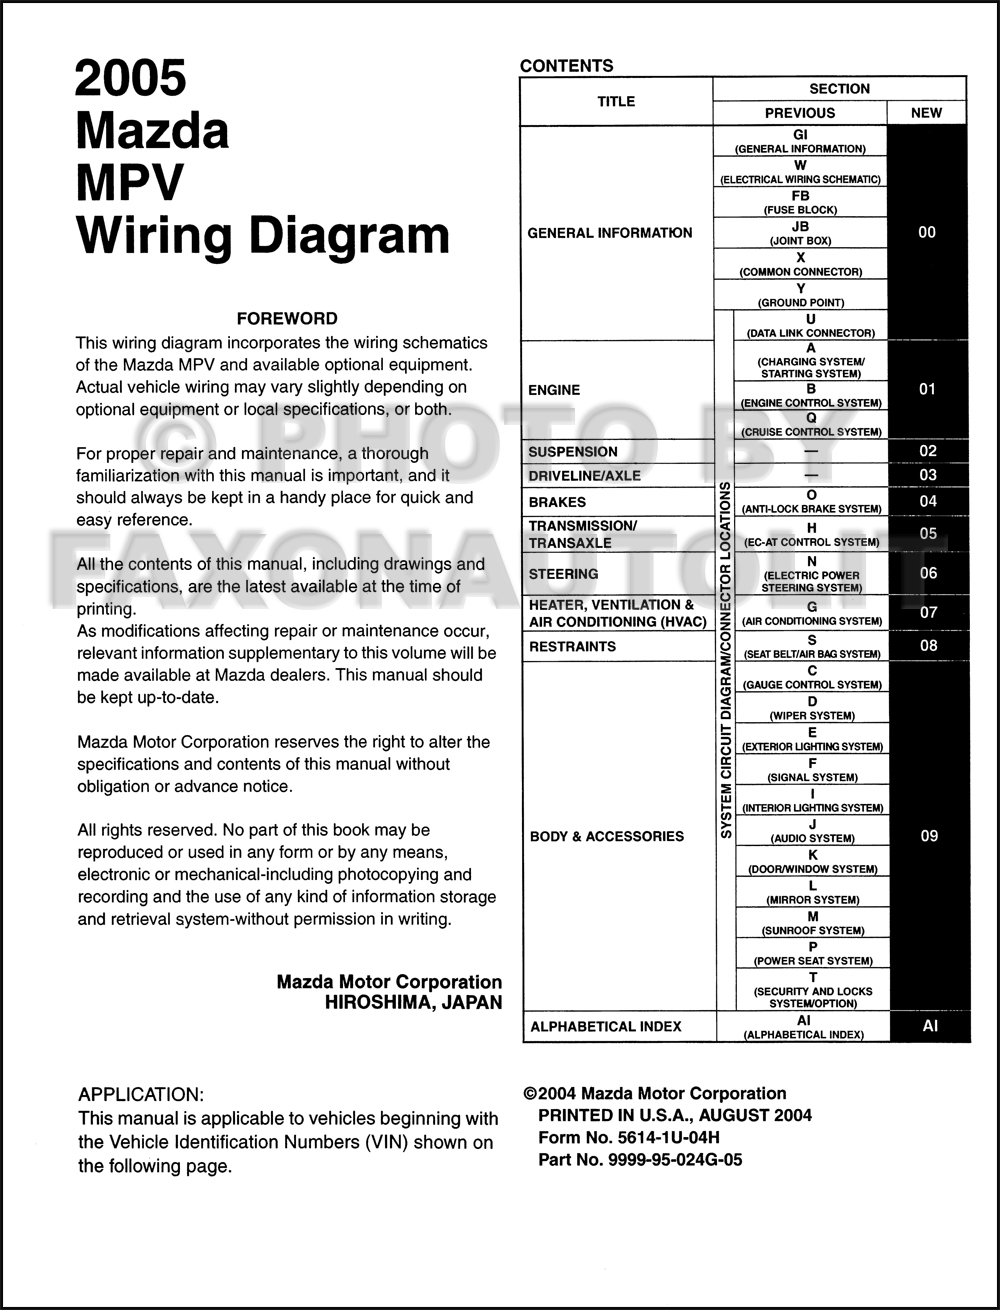 WRG-7488] 2000 Mazda Mpv Engine Diagram35.apothekemed.org